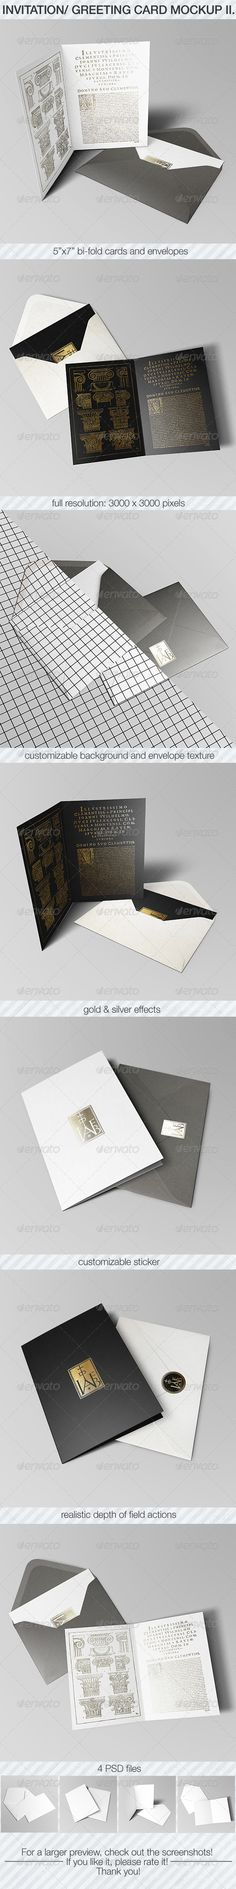 Invitation & Greeting Card Mockup Pack II. — Photoshop PSD #gold #depth • Available here → https://graphicriver.net/item/invitation-greeting-card-mockup-pack-ii/6933971?ref=pxcr